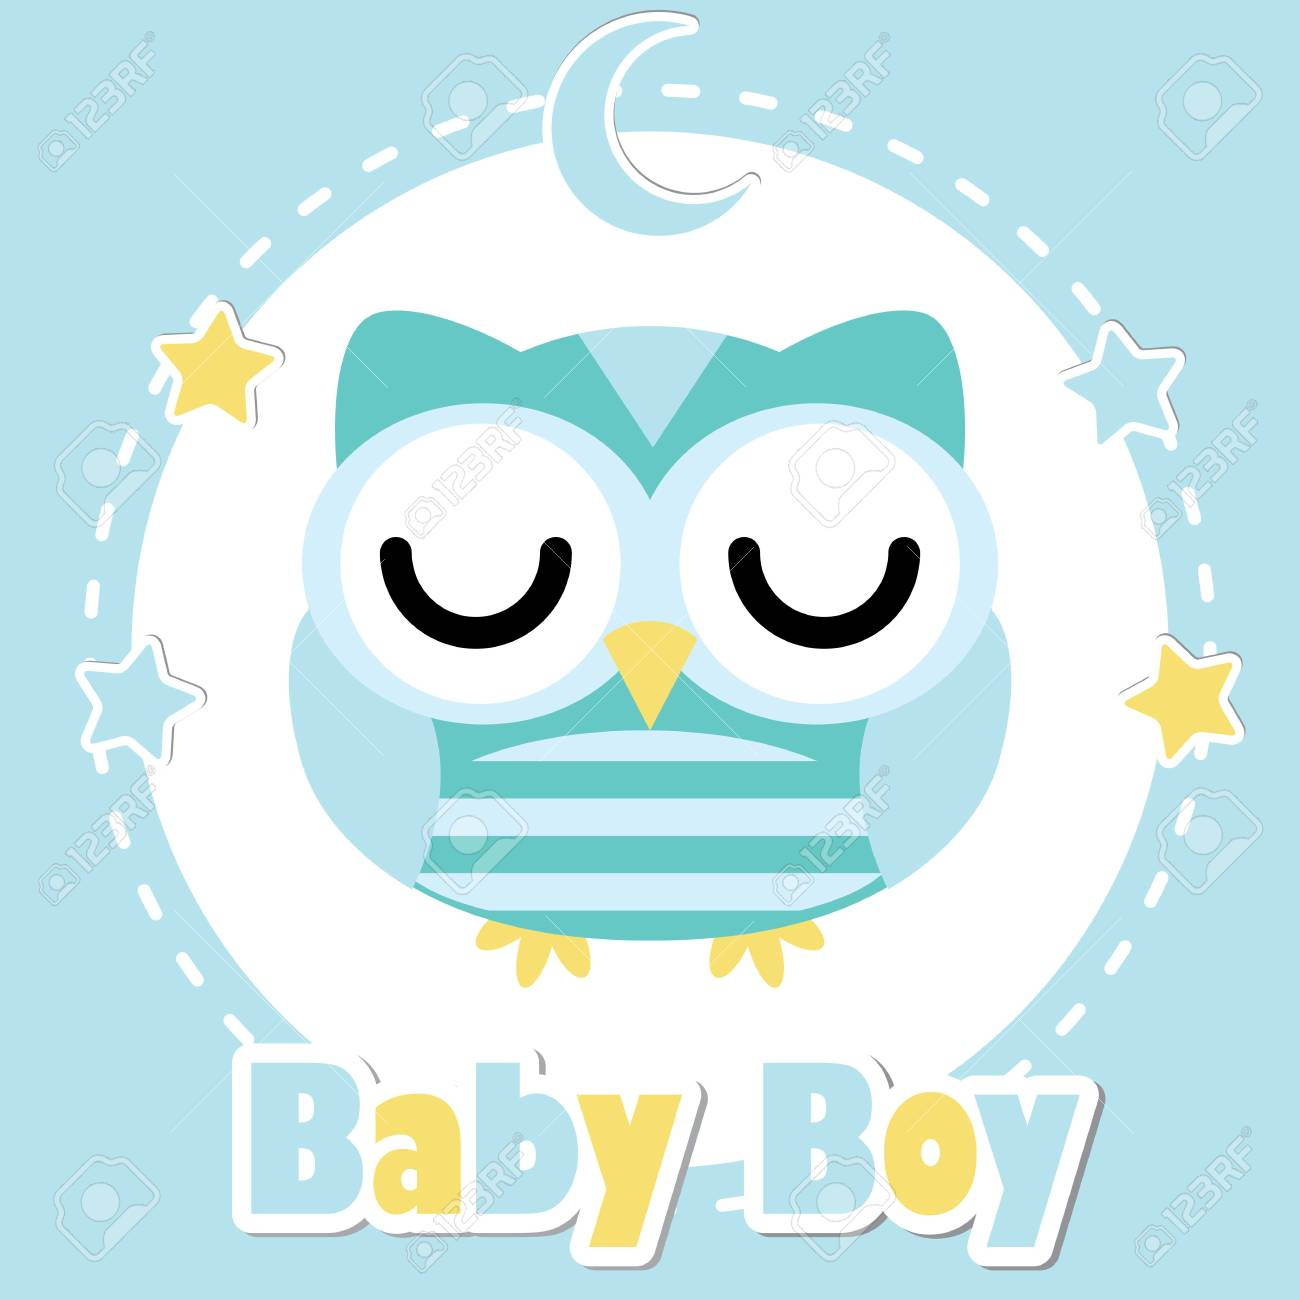 Baby shower invitation card design for boys, postcard and wallpaper with cute sleeping owl.